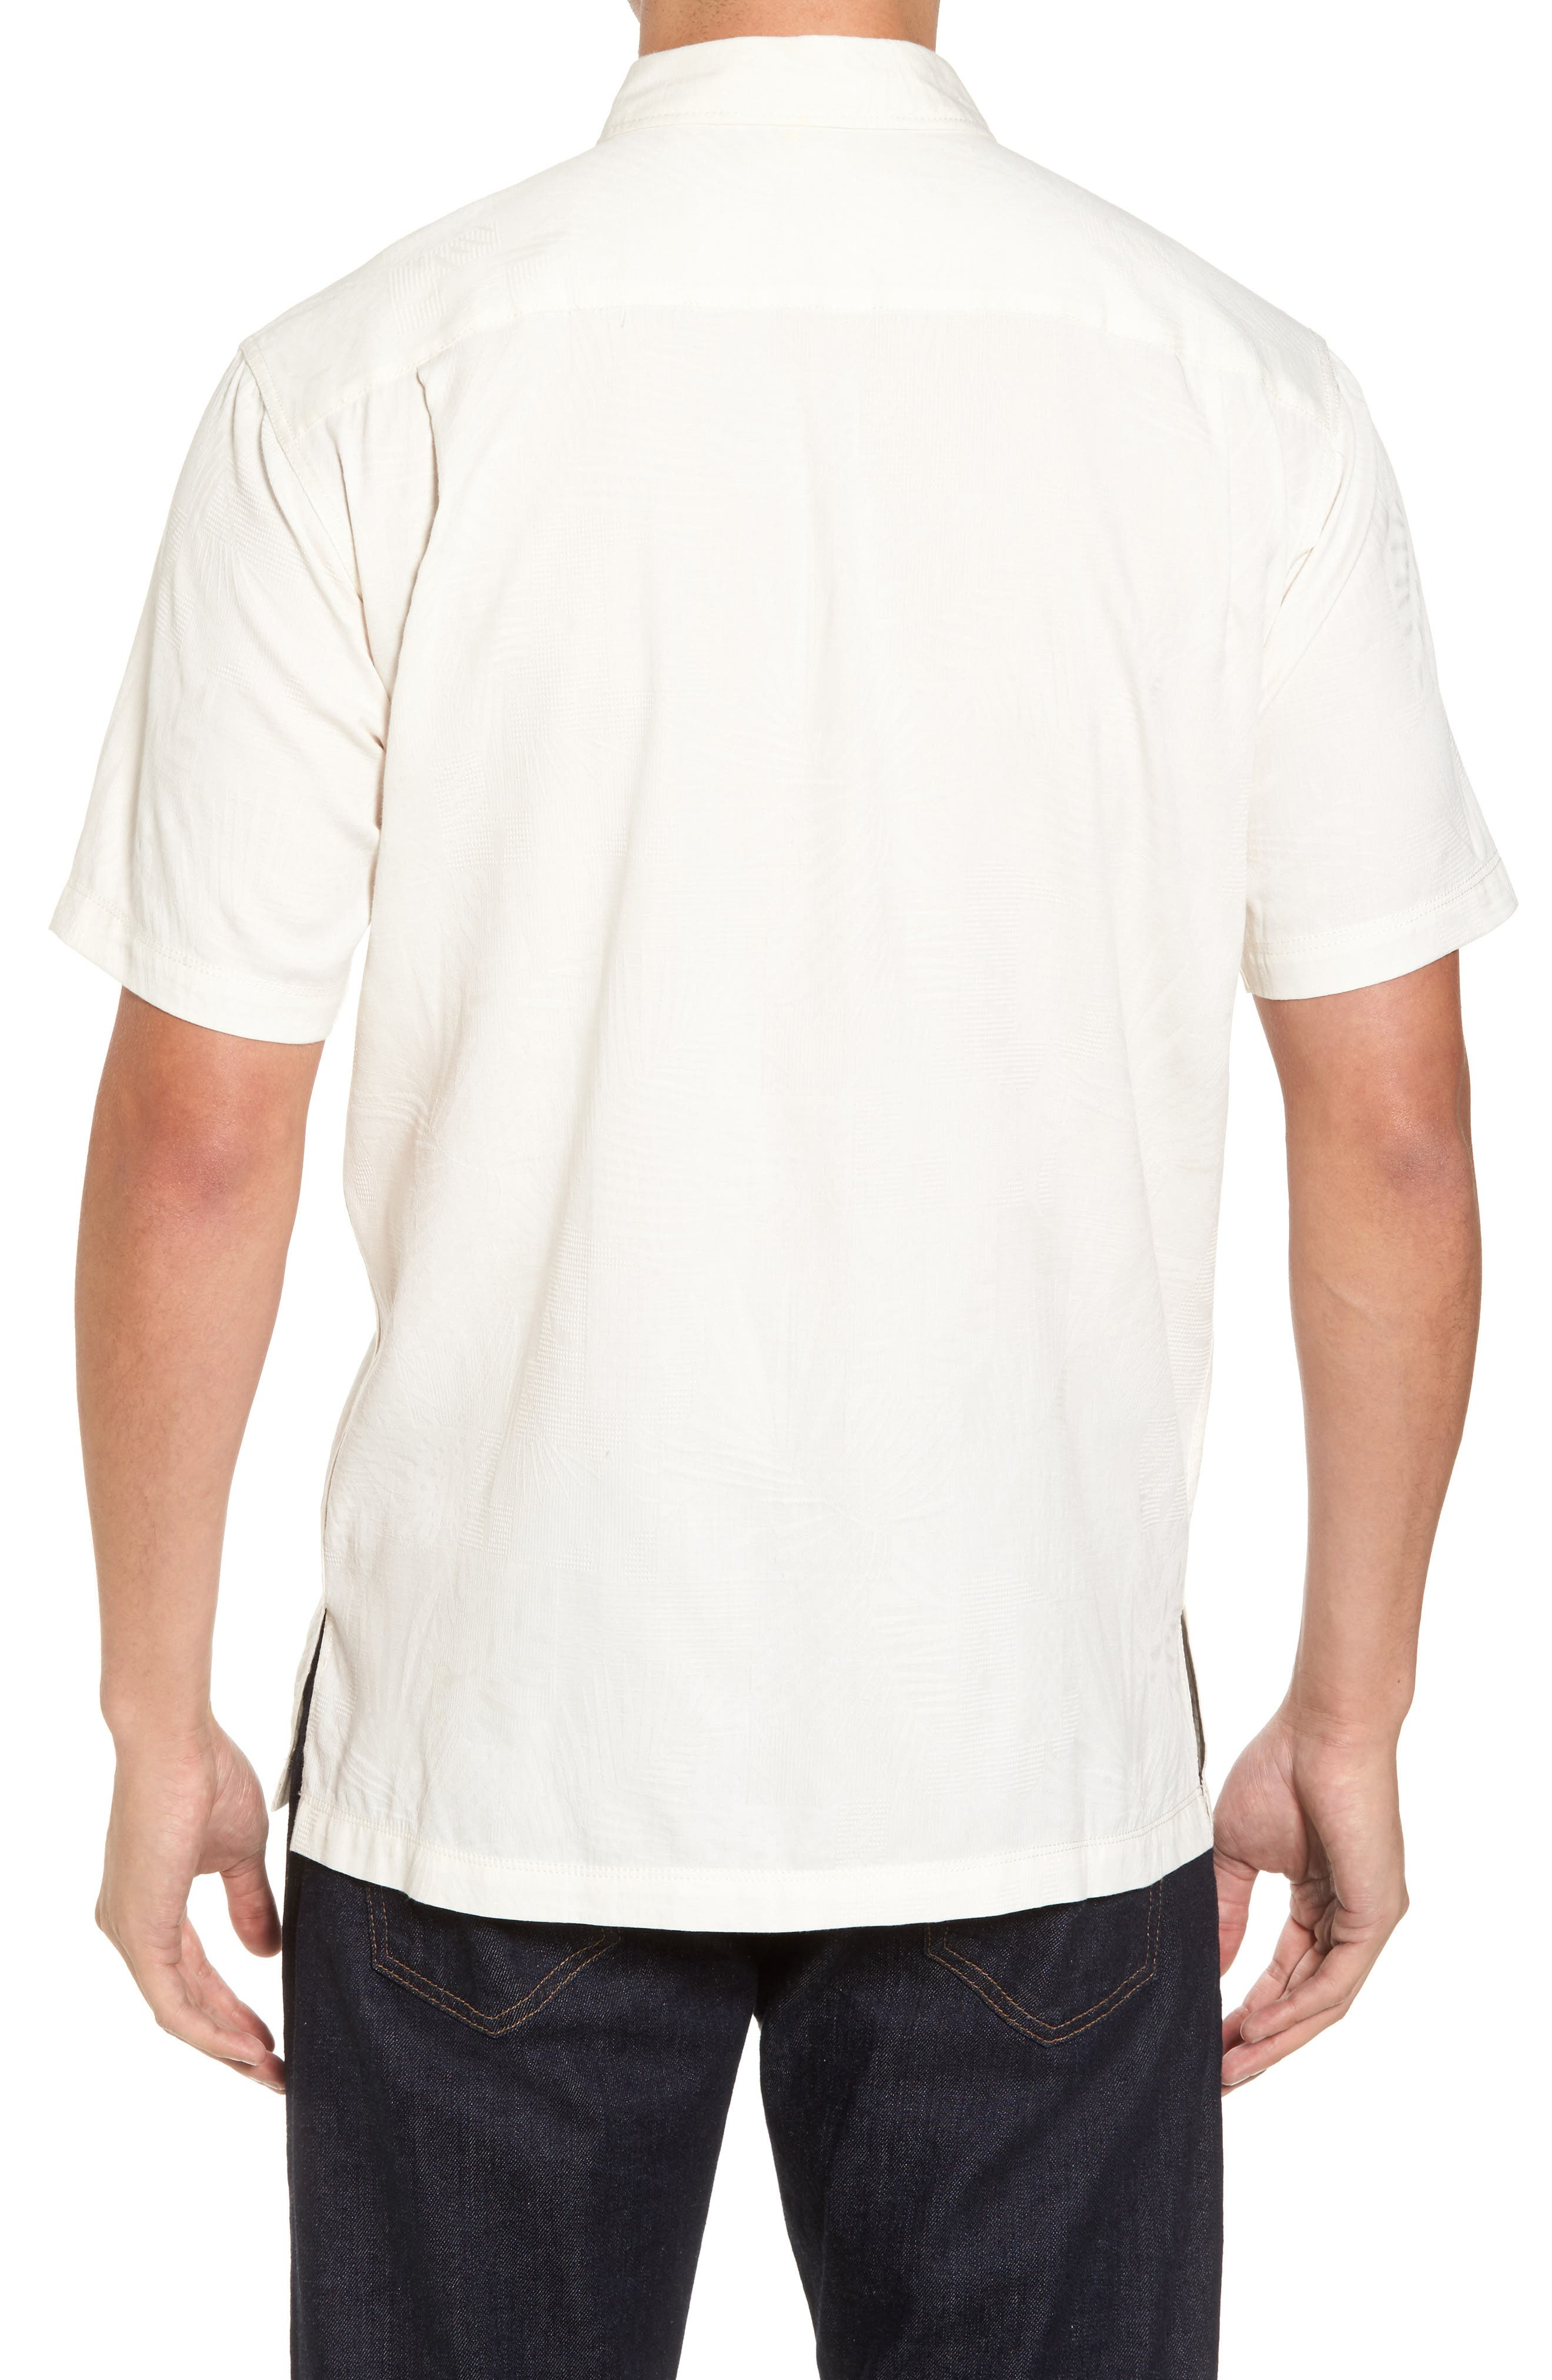 Milagro Classic Fit Sport Shirt,                             Alternate thumbnail 2, color,